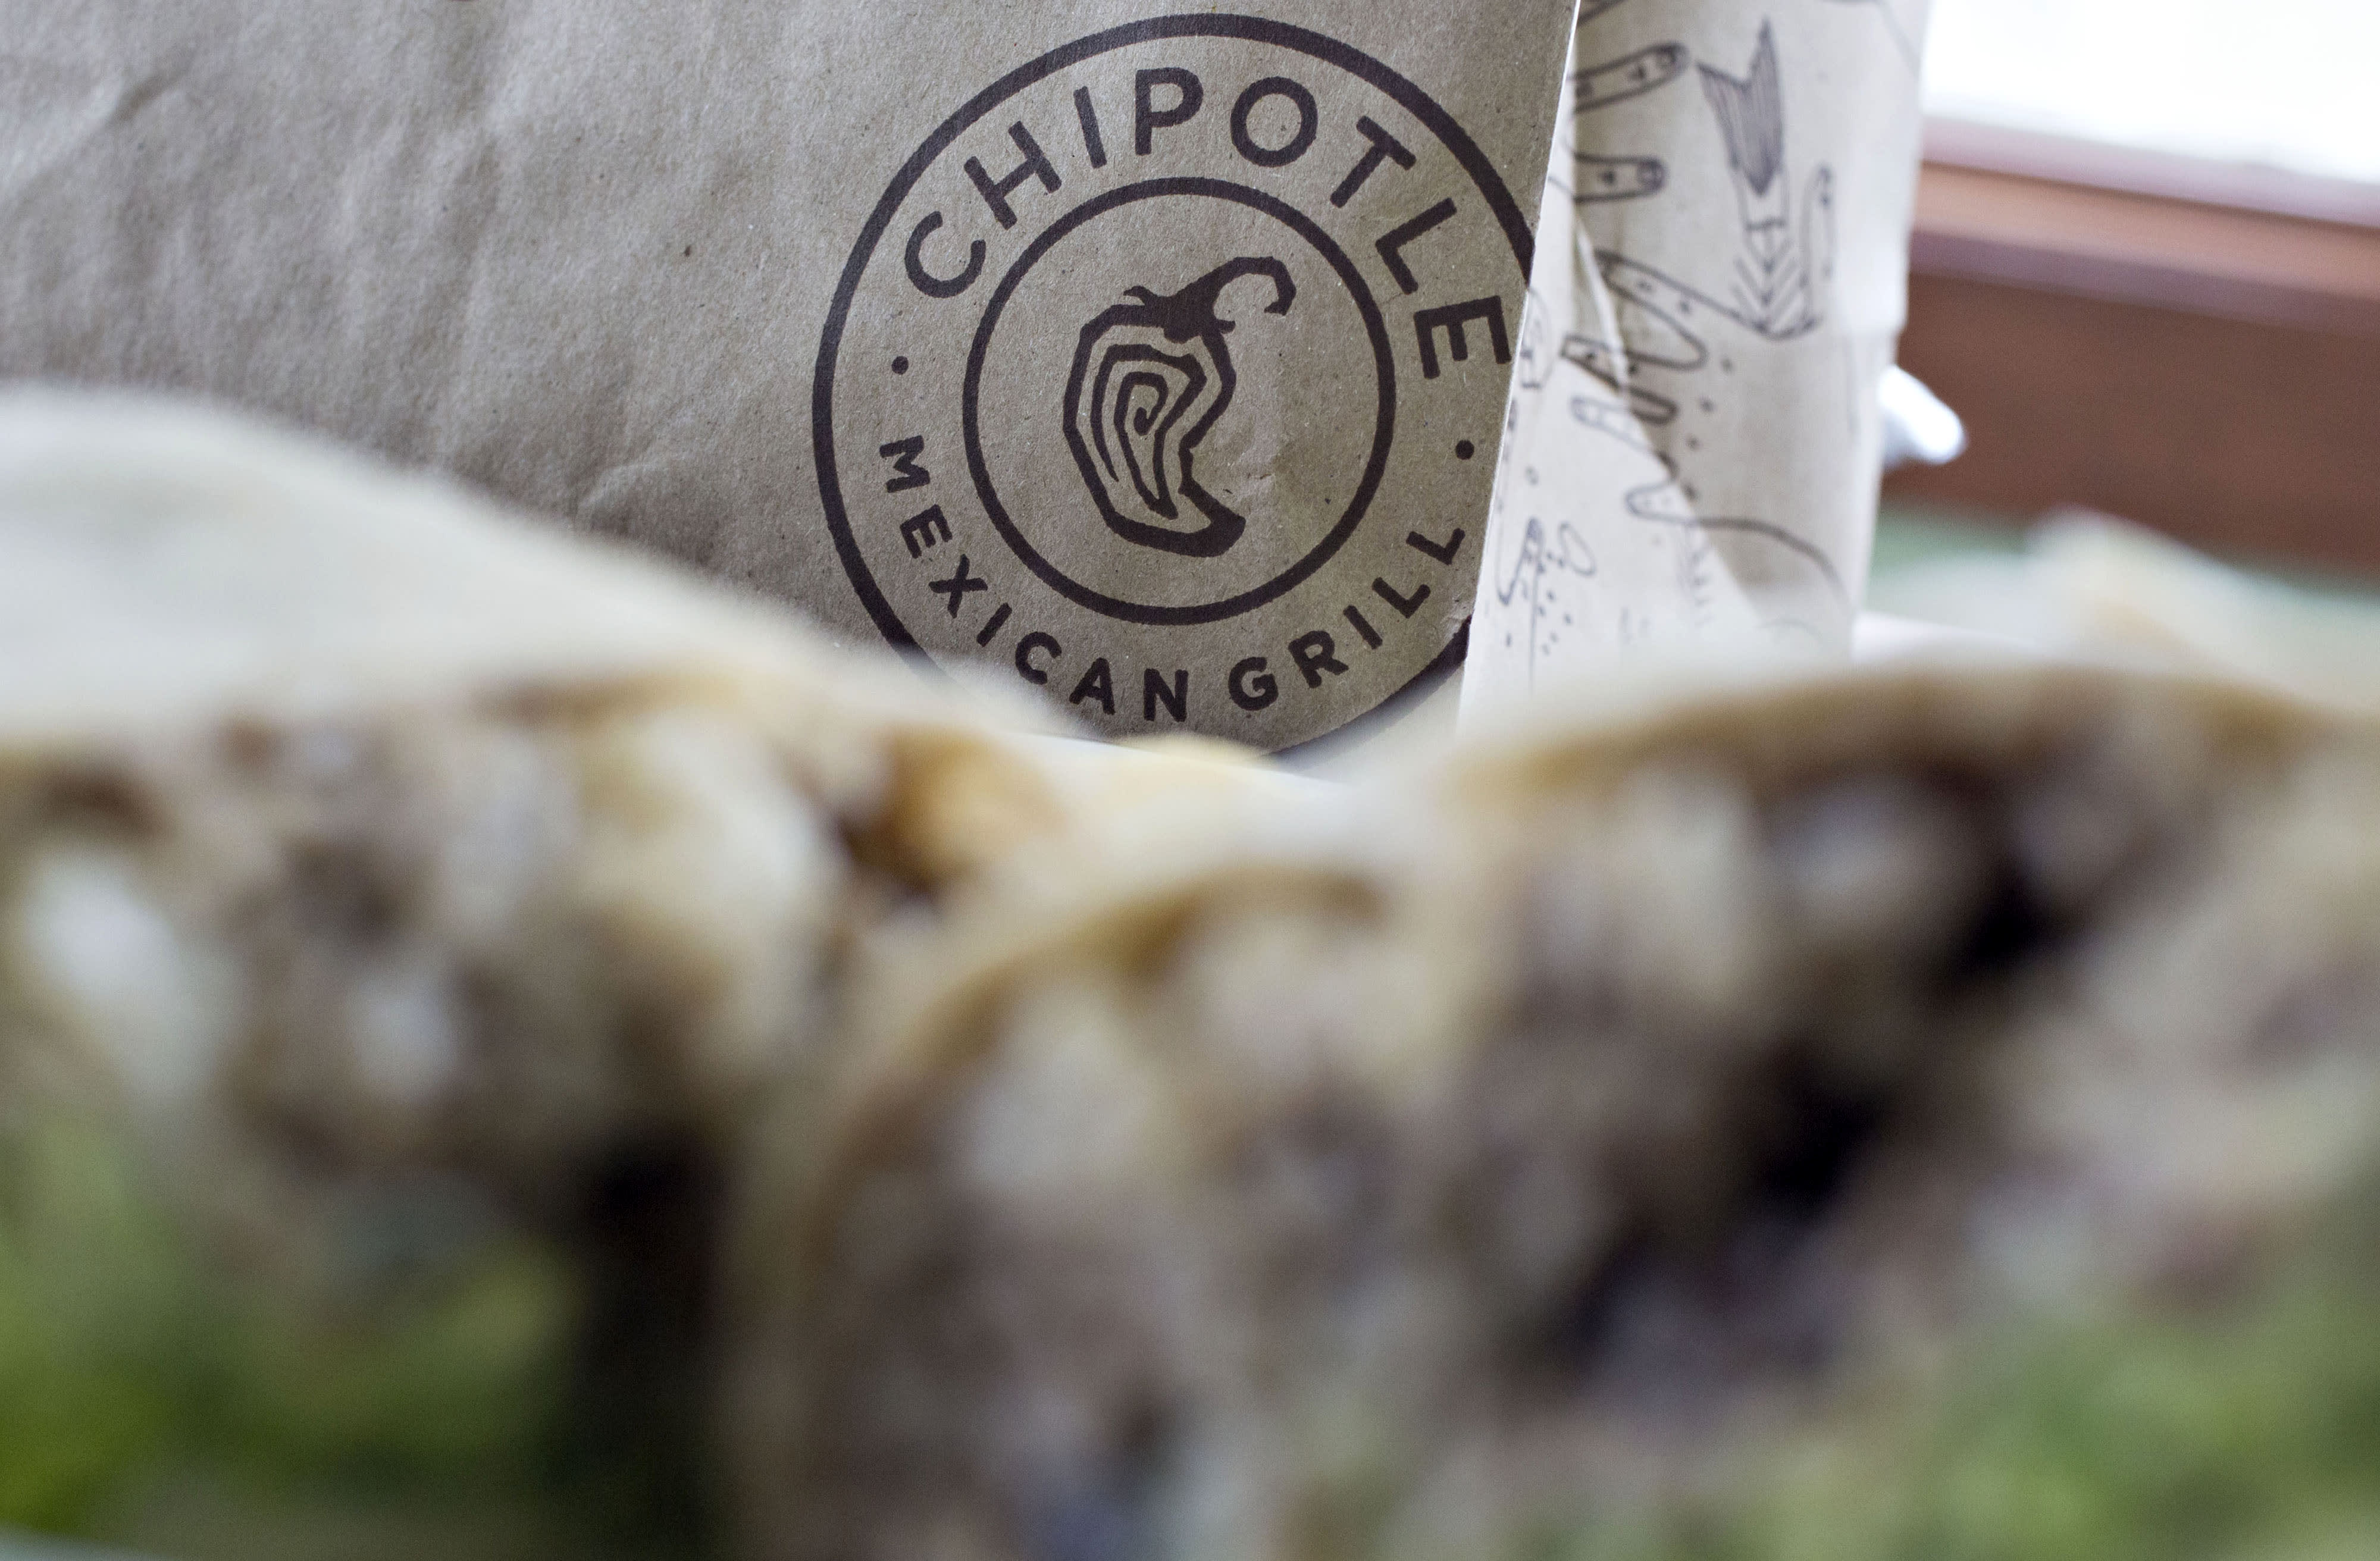 Chipotle is doing some very unChipotle things to win back diners